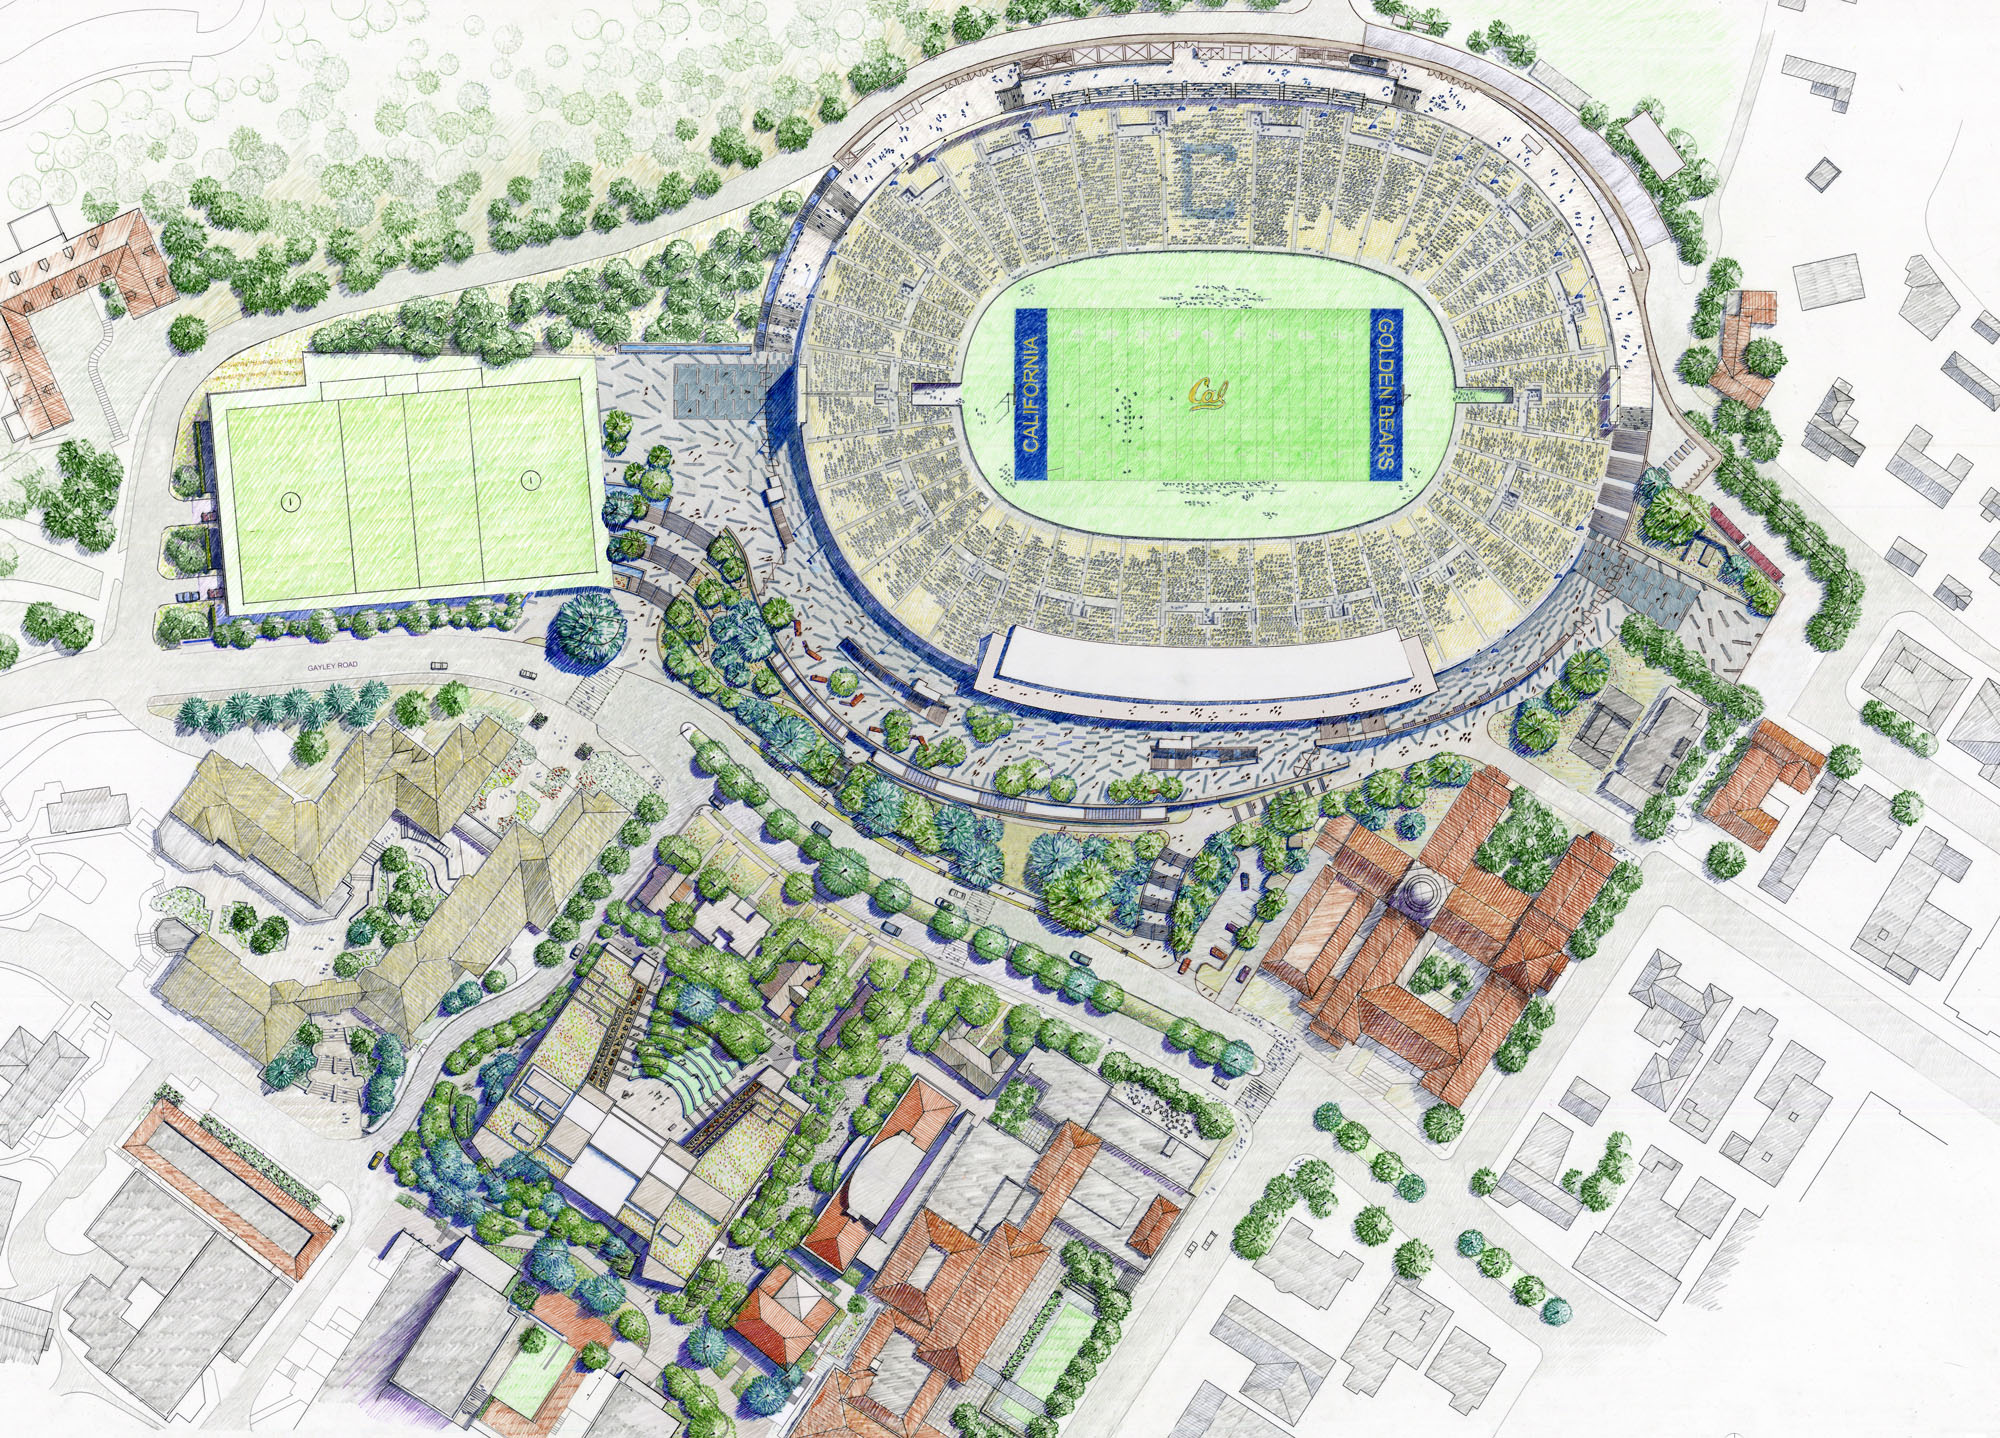 Uc berkeley eir on southeast campus projects for Planner site